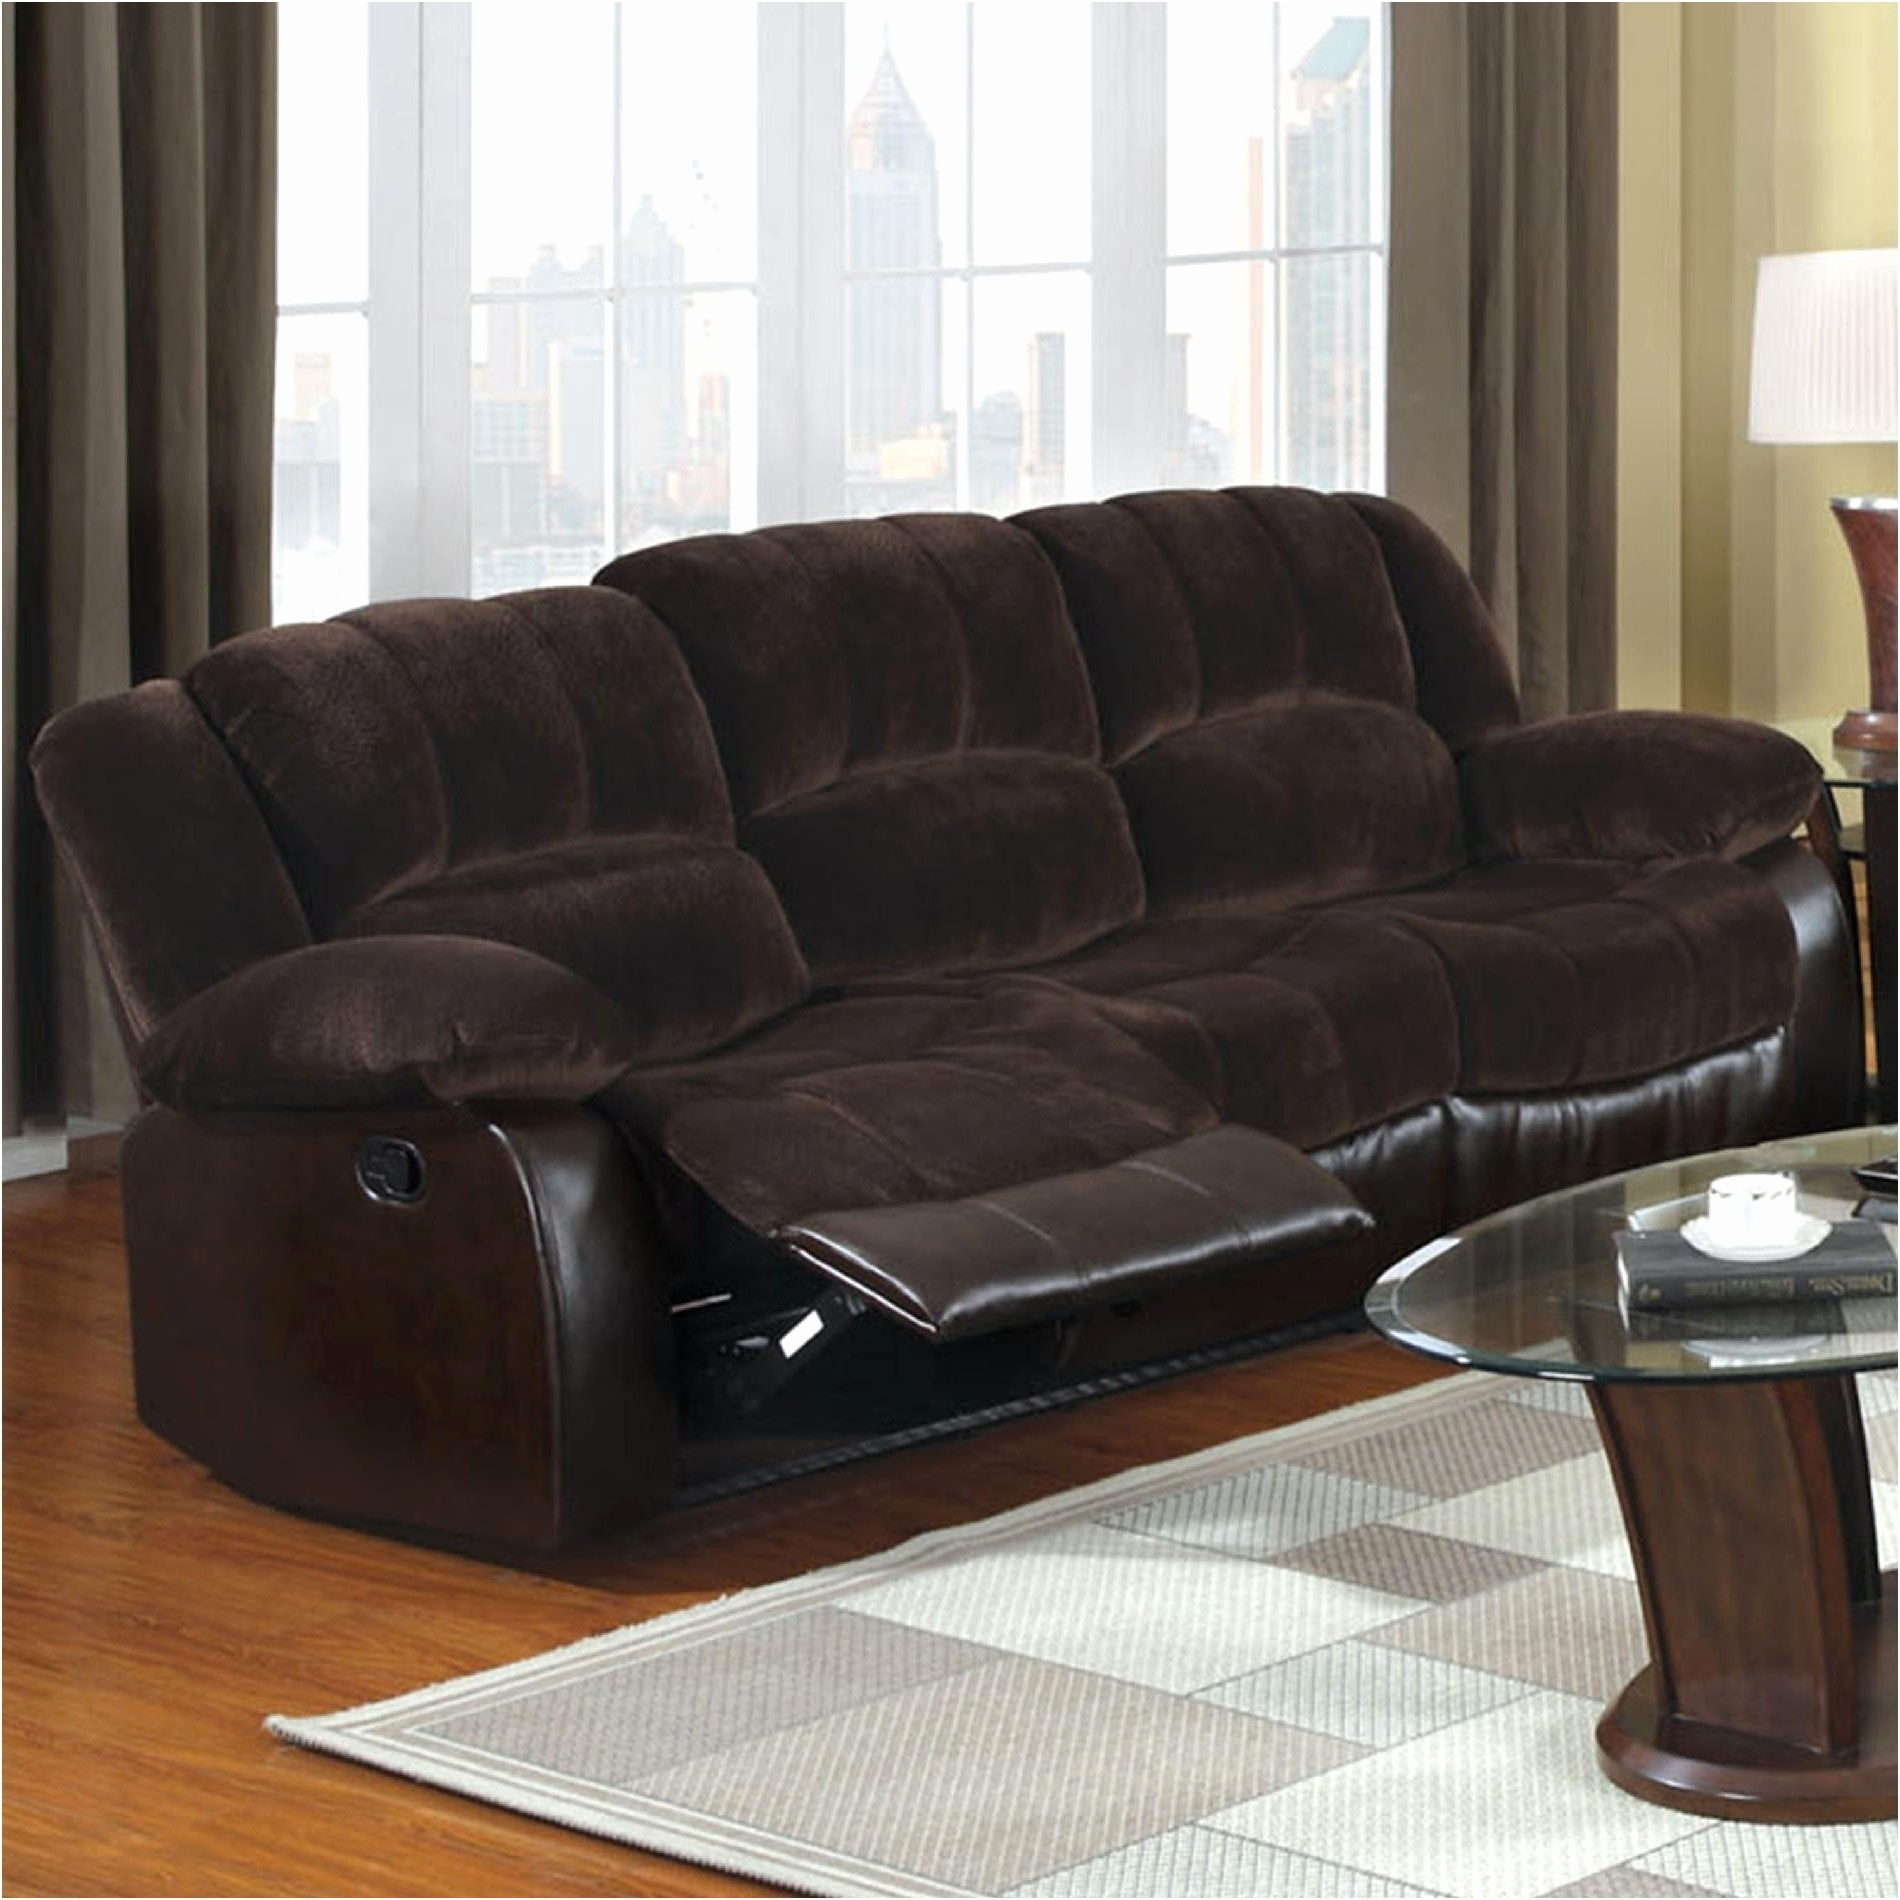 Fresh Sears Leather Sofa New – Intuisiblog Pertaining To Sears Sofas (View 4 of 10)